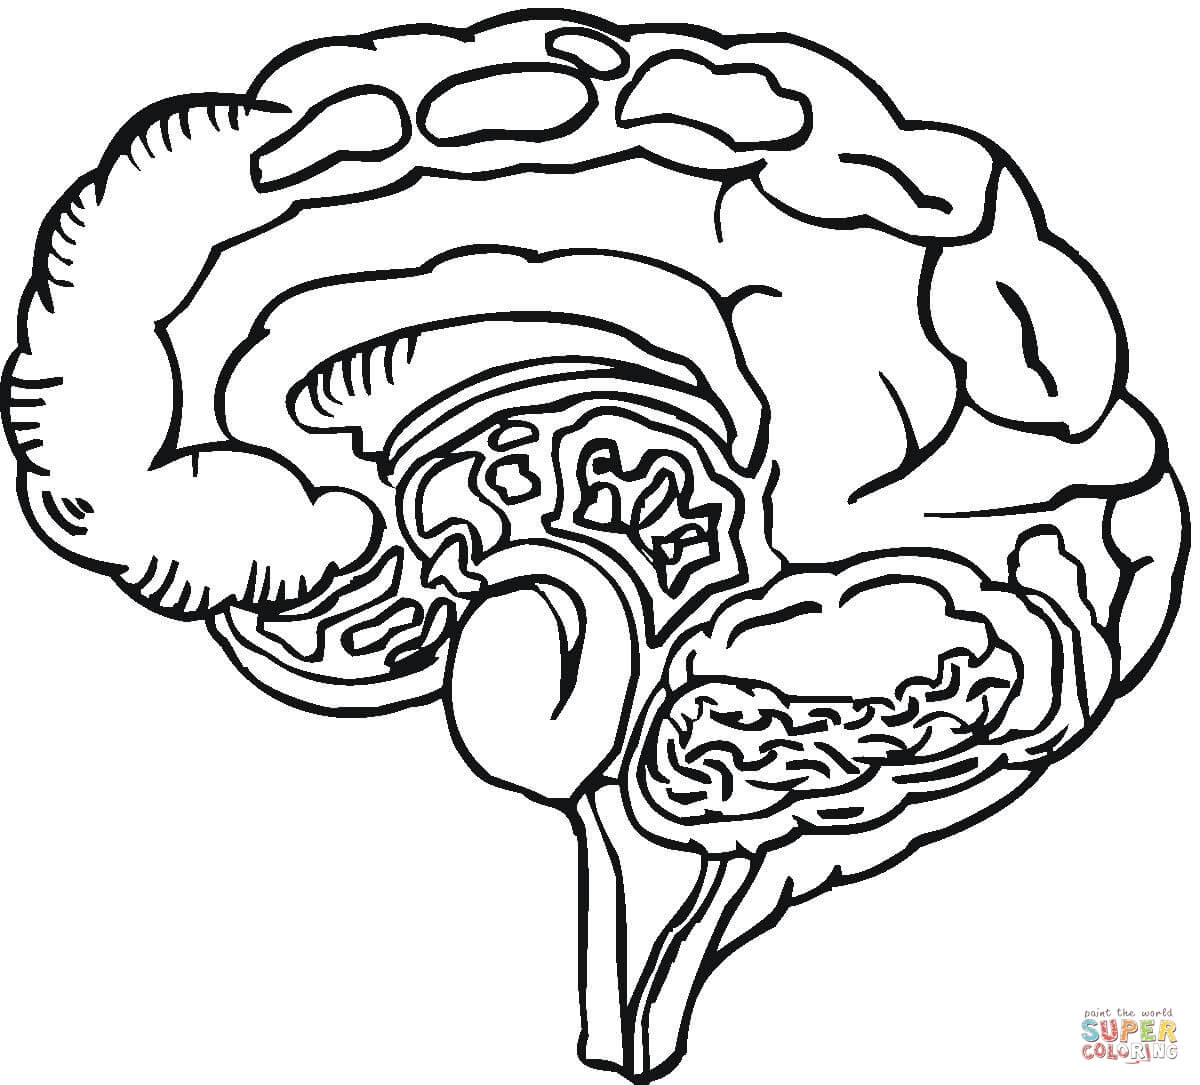 It's just a photo of Crush Brain Anatomy Coloring Book